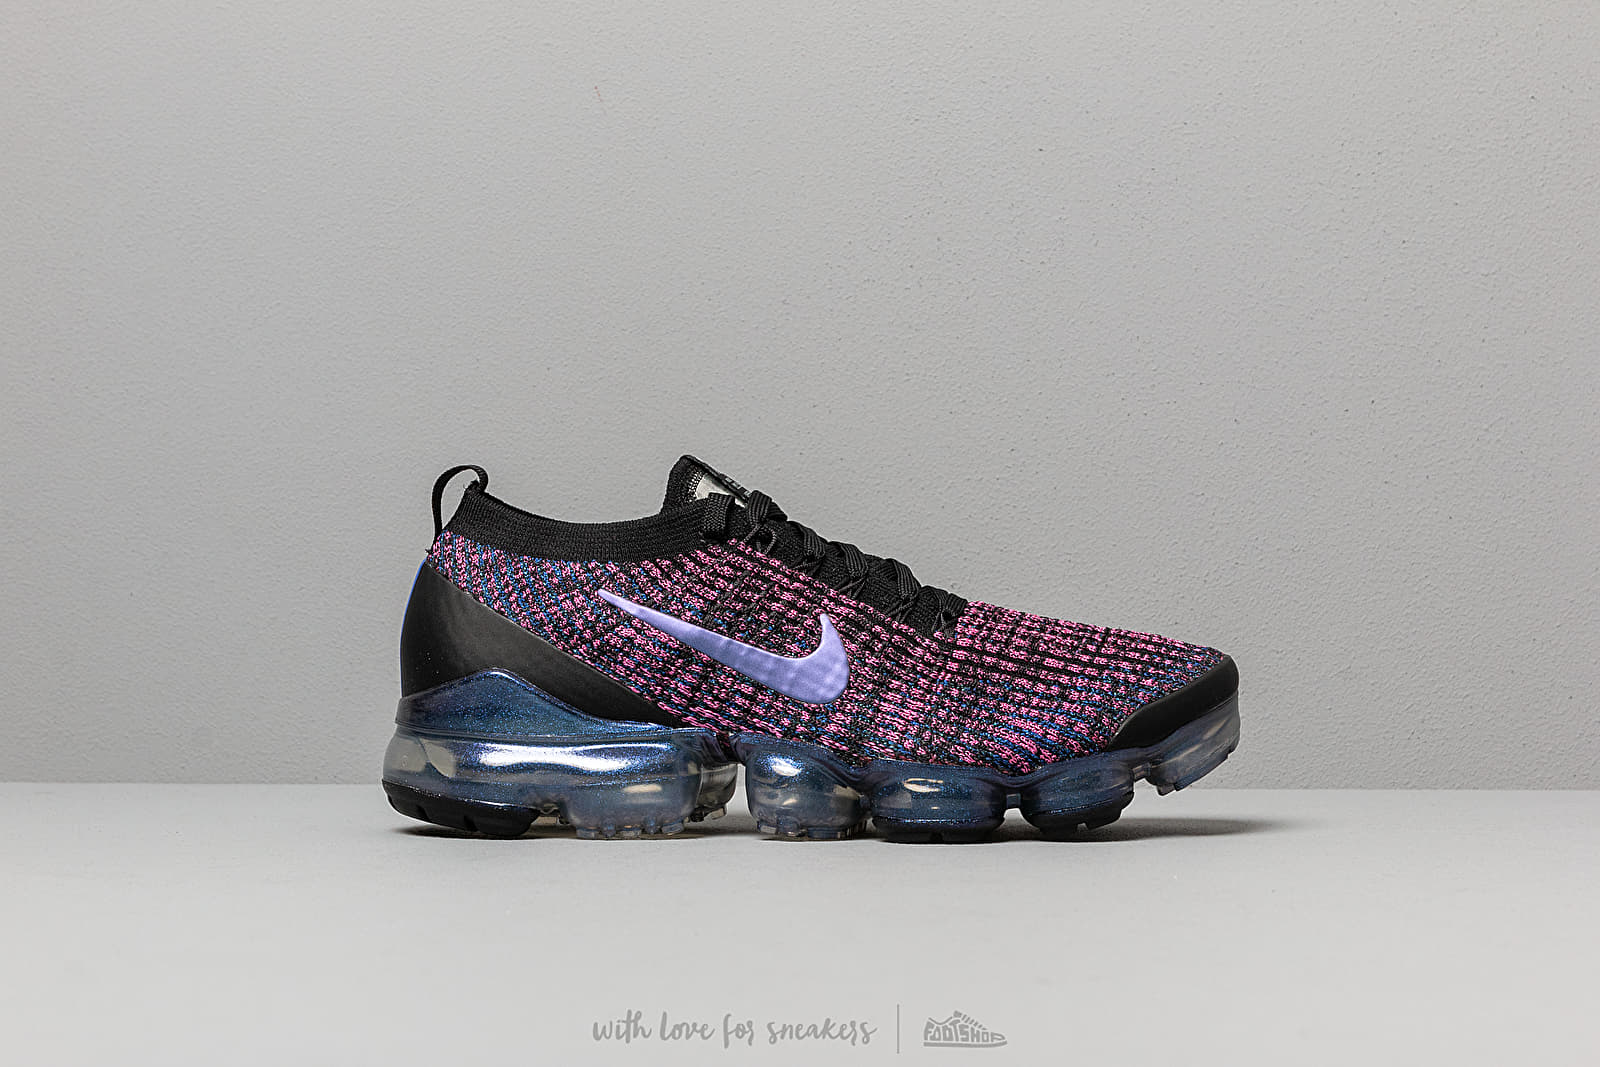 b07a8dc6dec17 Nike Air Vapormax Flyknit 3 Black  Racer Blue-Laser Fuchsia at a great price